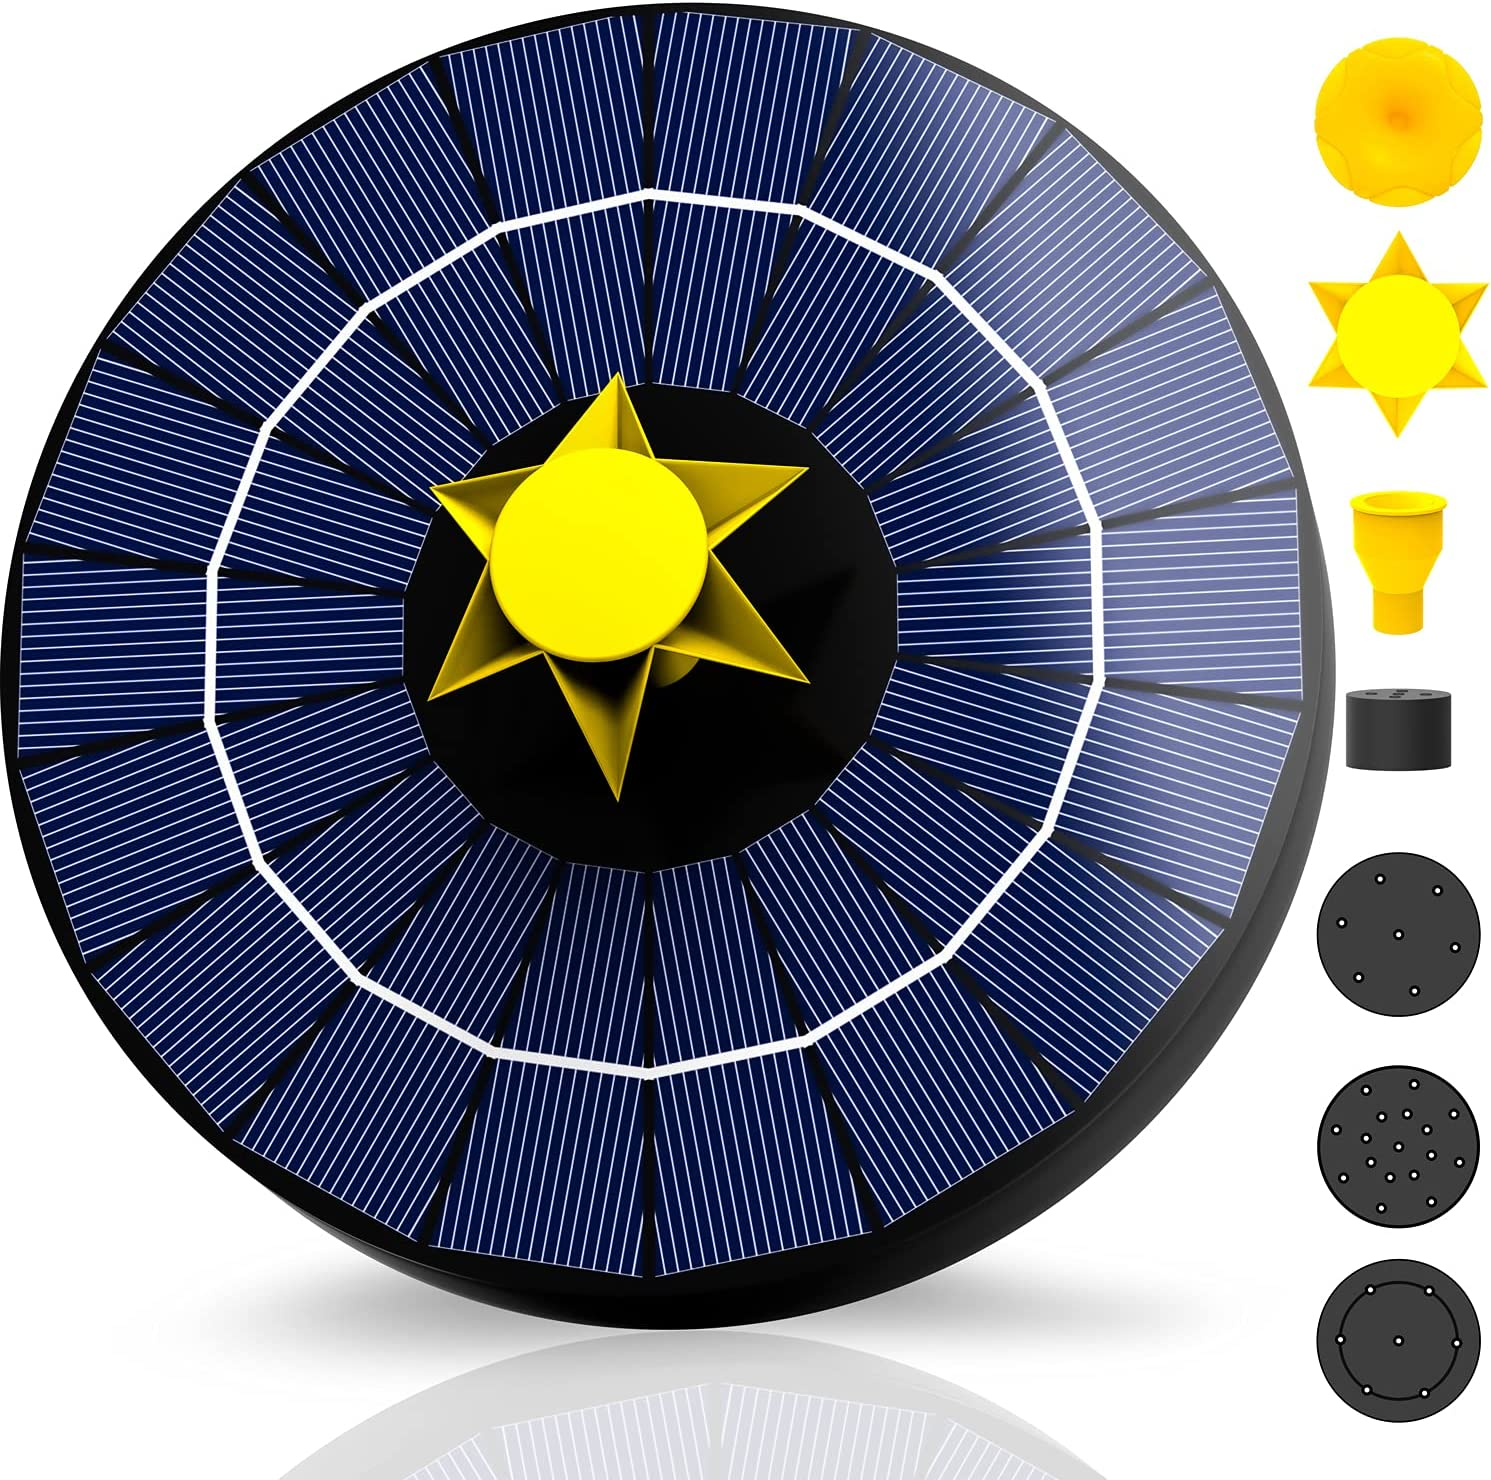 NVRGIUP 4W Solar Fountain with 3000mAh Backup Batteries, 2021 Upgraded Fixed Floating Design + WATERLEVELSWITCH + Filtering Clutter + 7 Sprayers Solar Powered Water Pump for Bird Bath, Pond, Garden